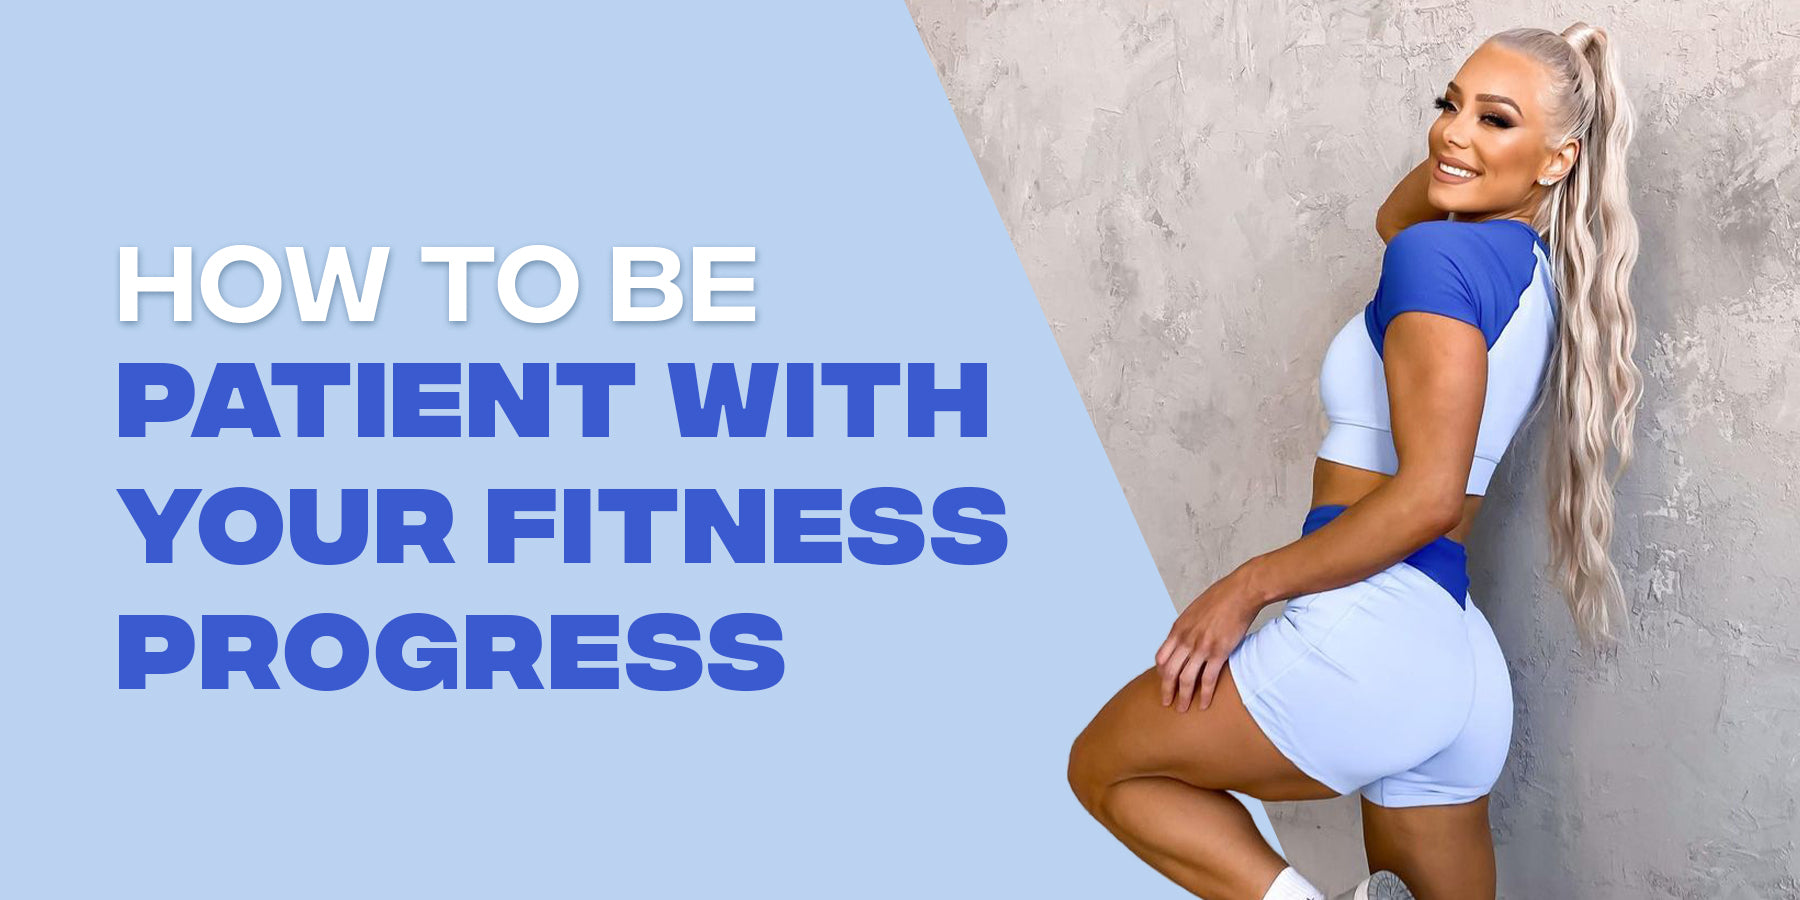 How To Be Patient With Your Fitness Progress